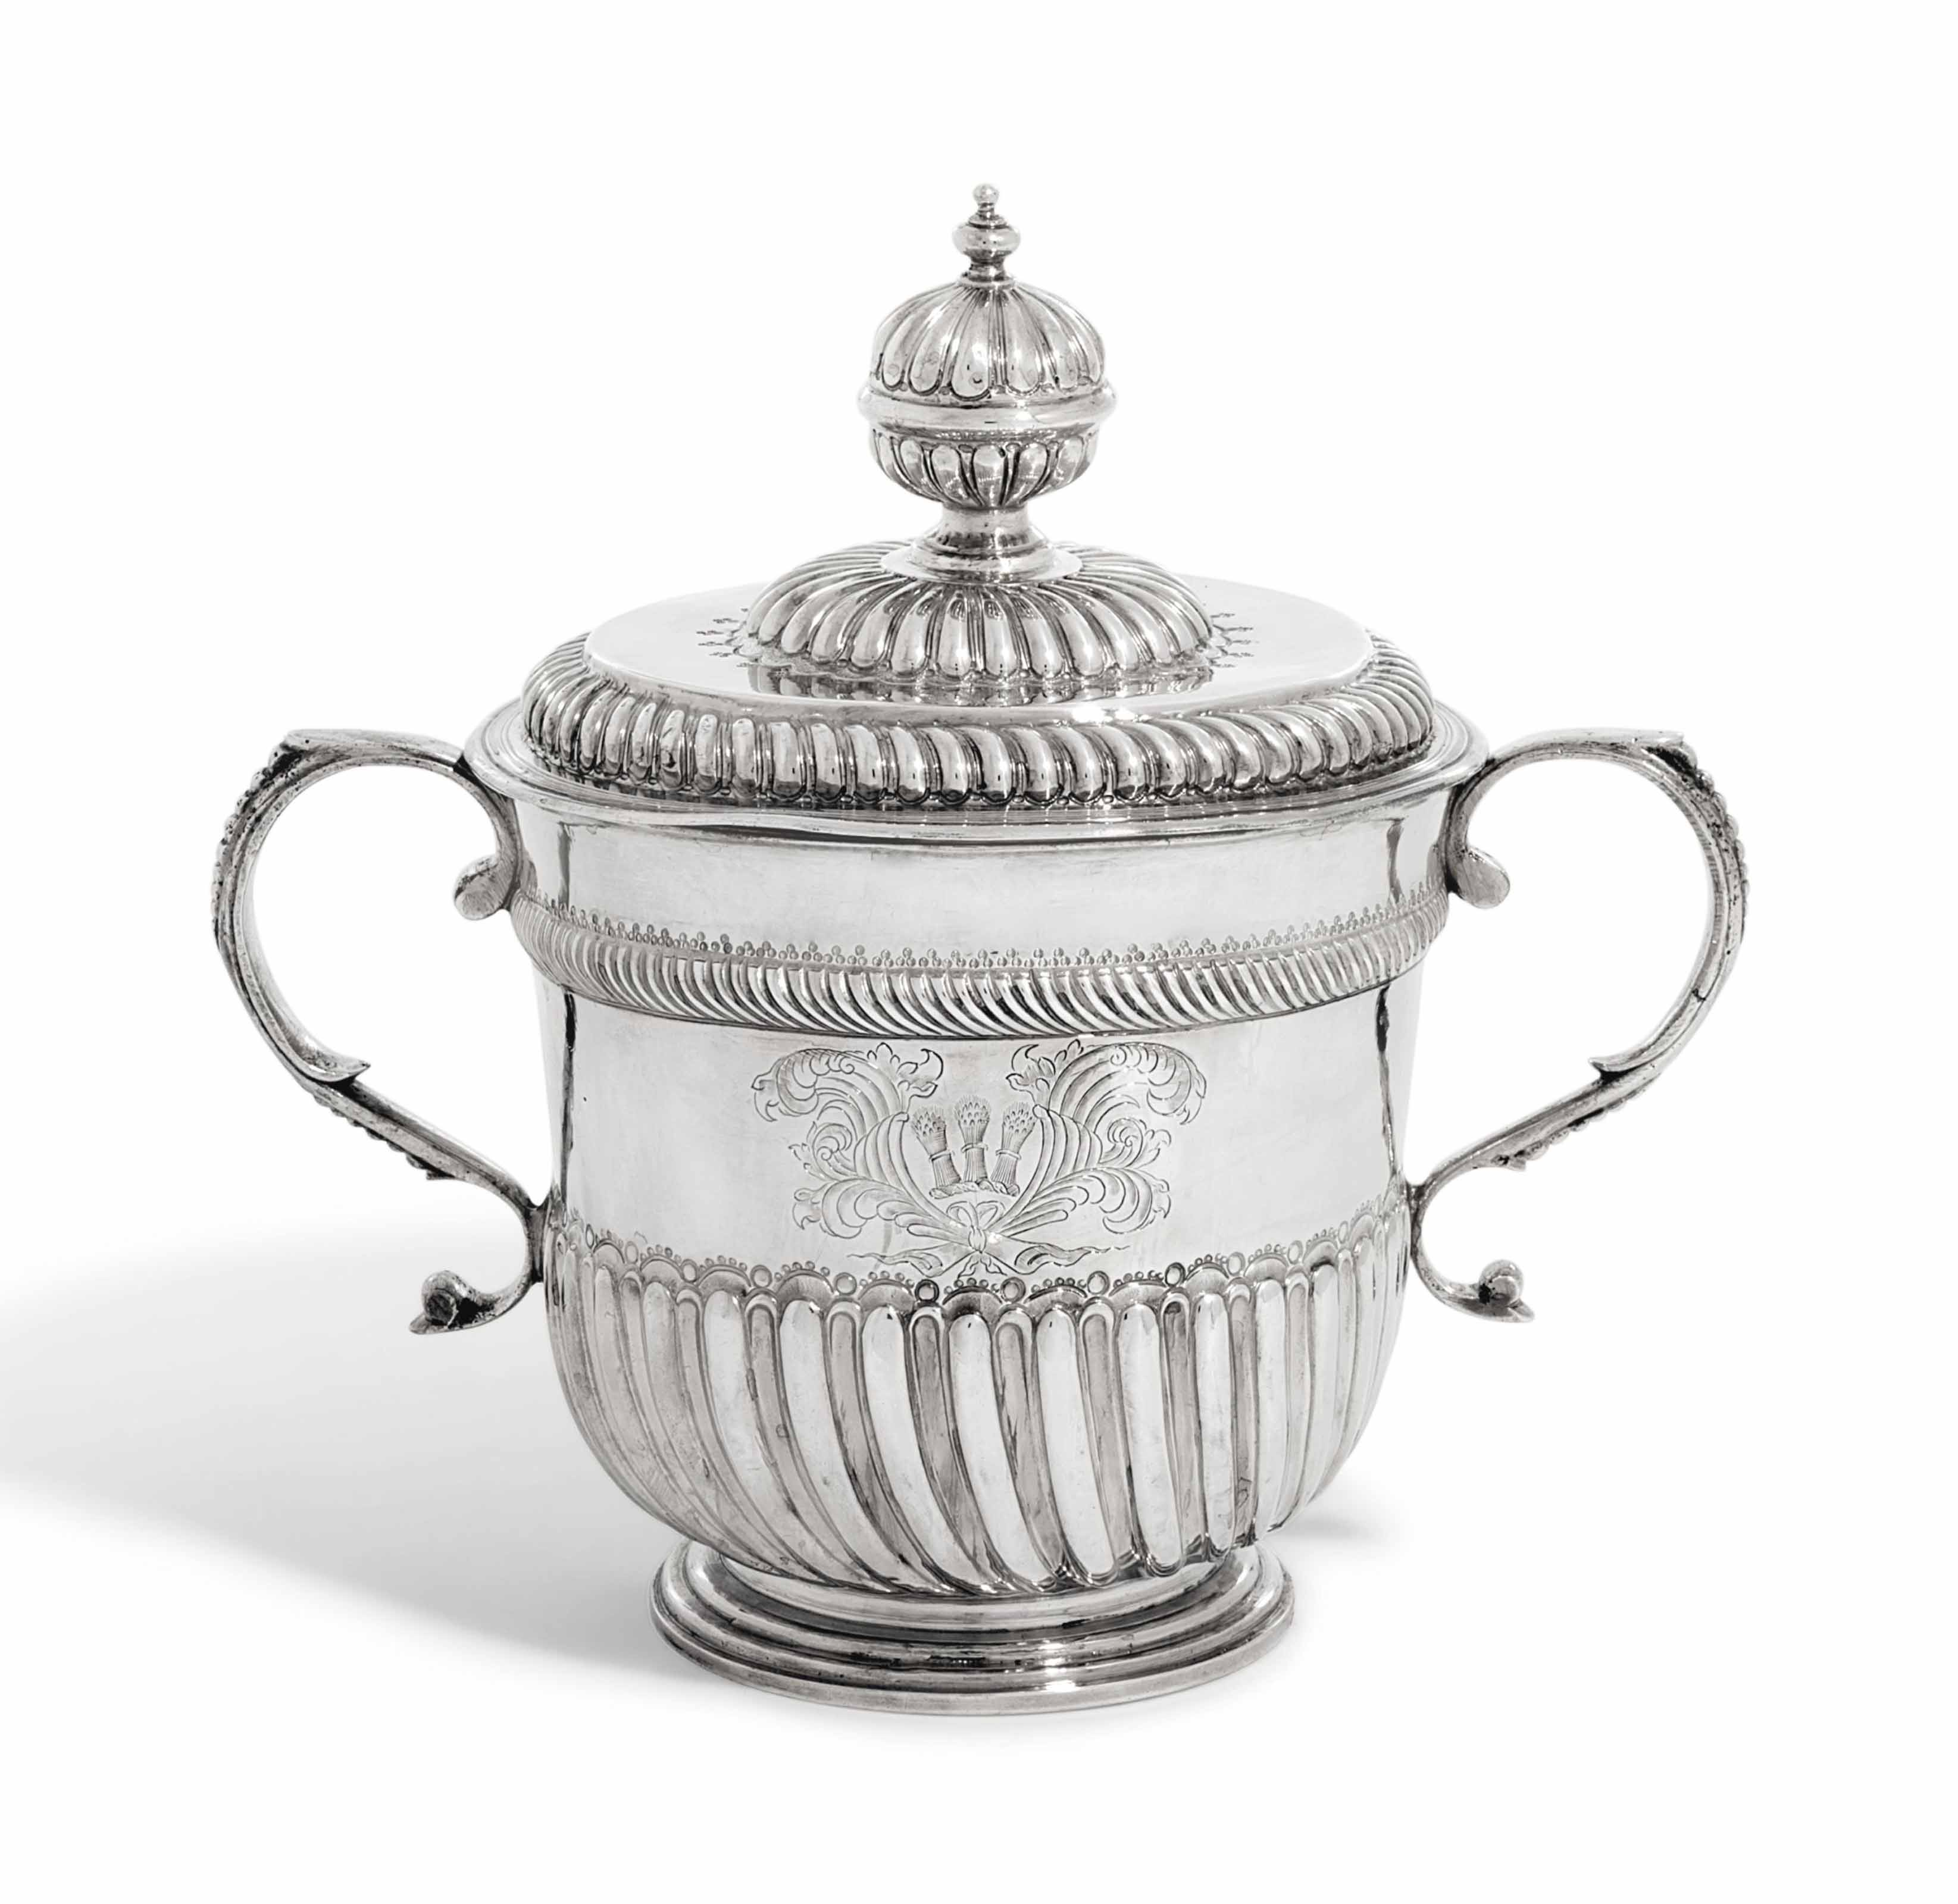 A WILLIAM AND MARY SILVER CUP